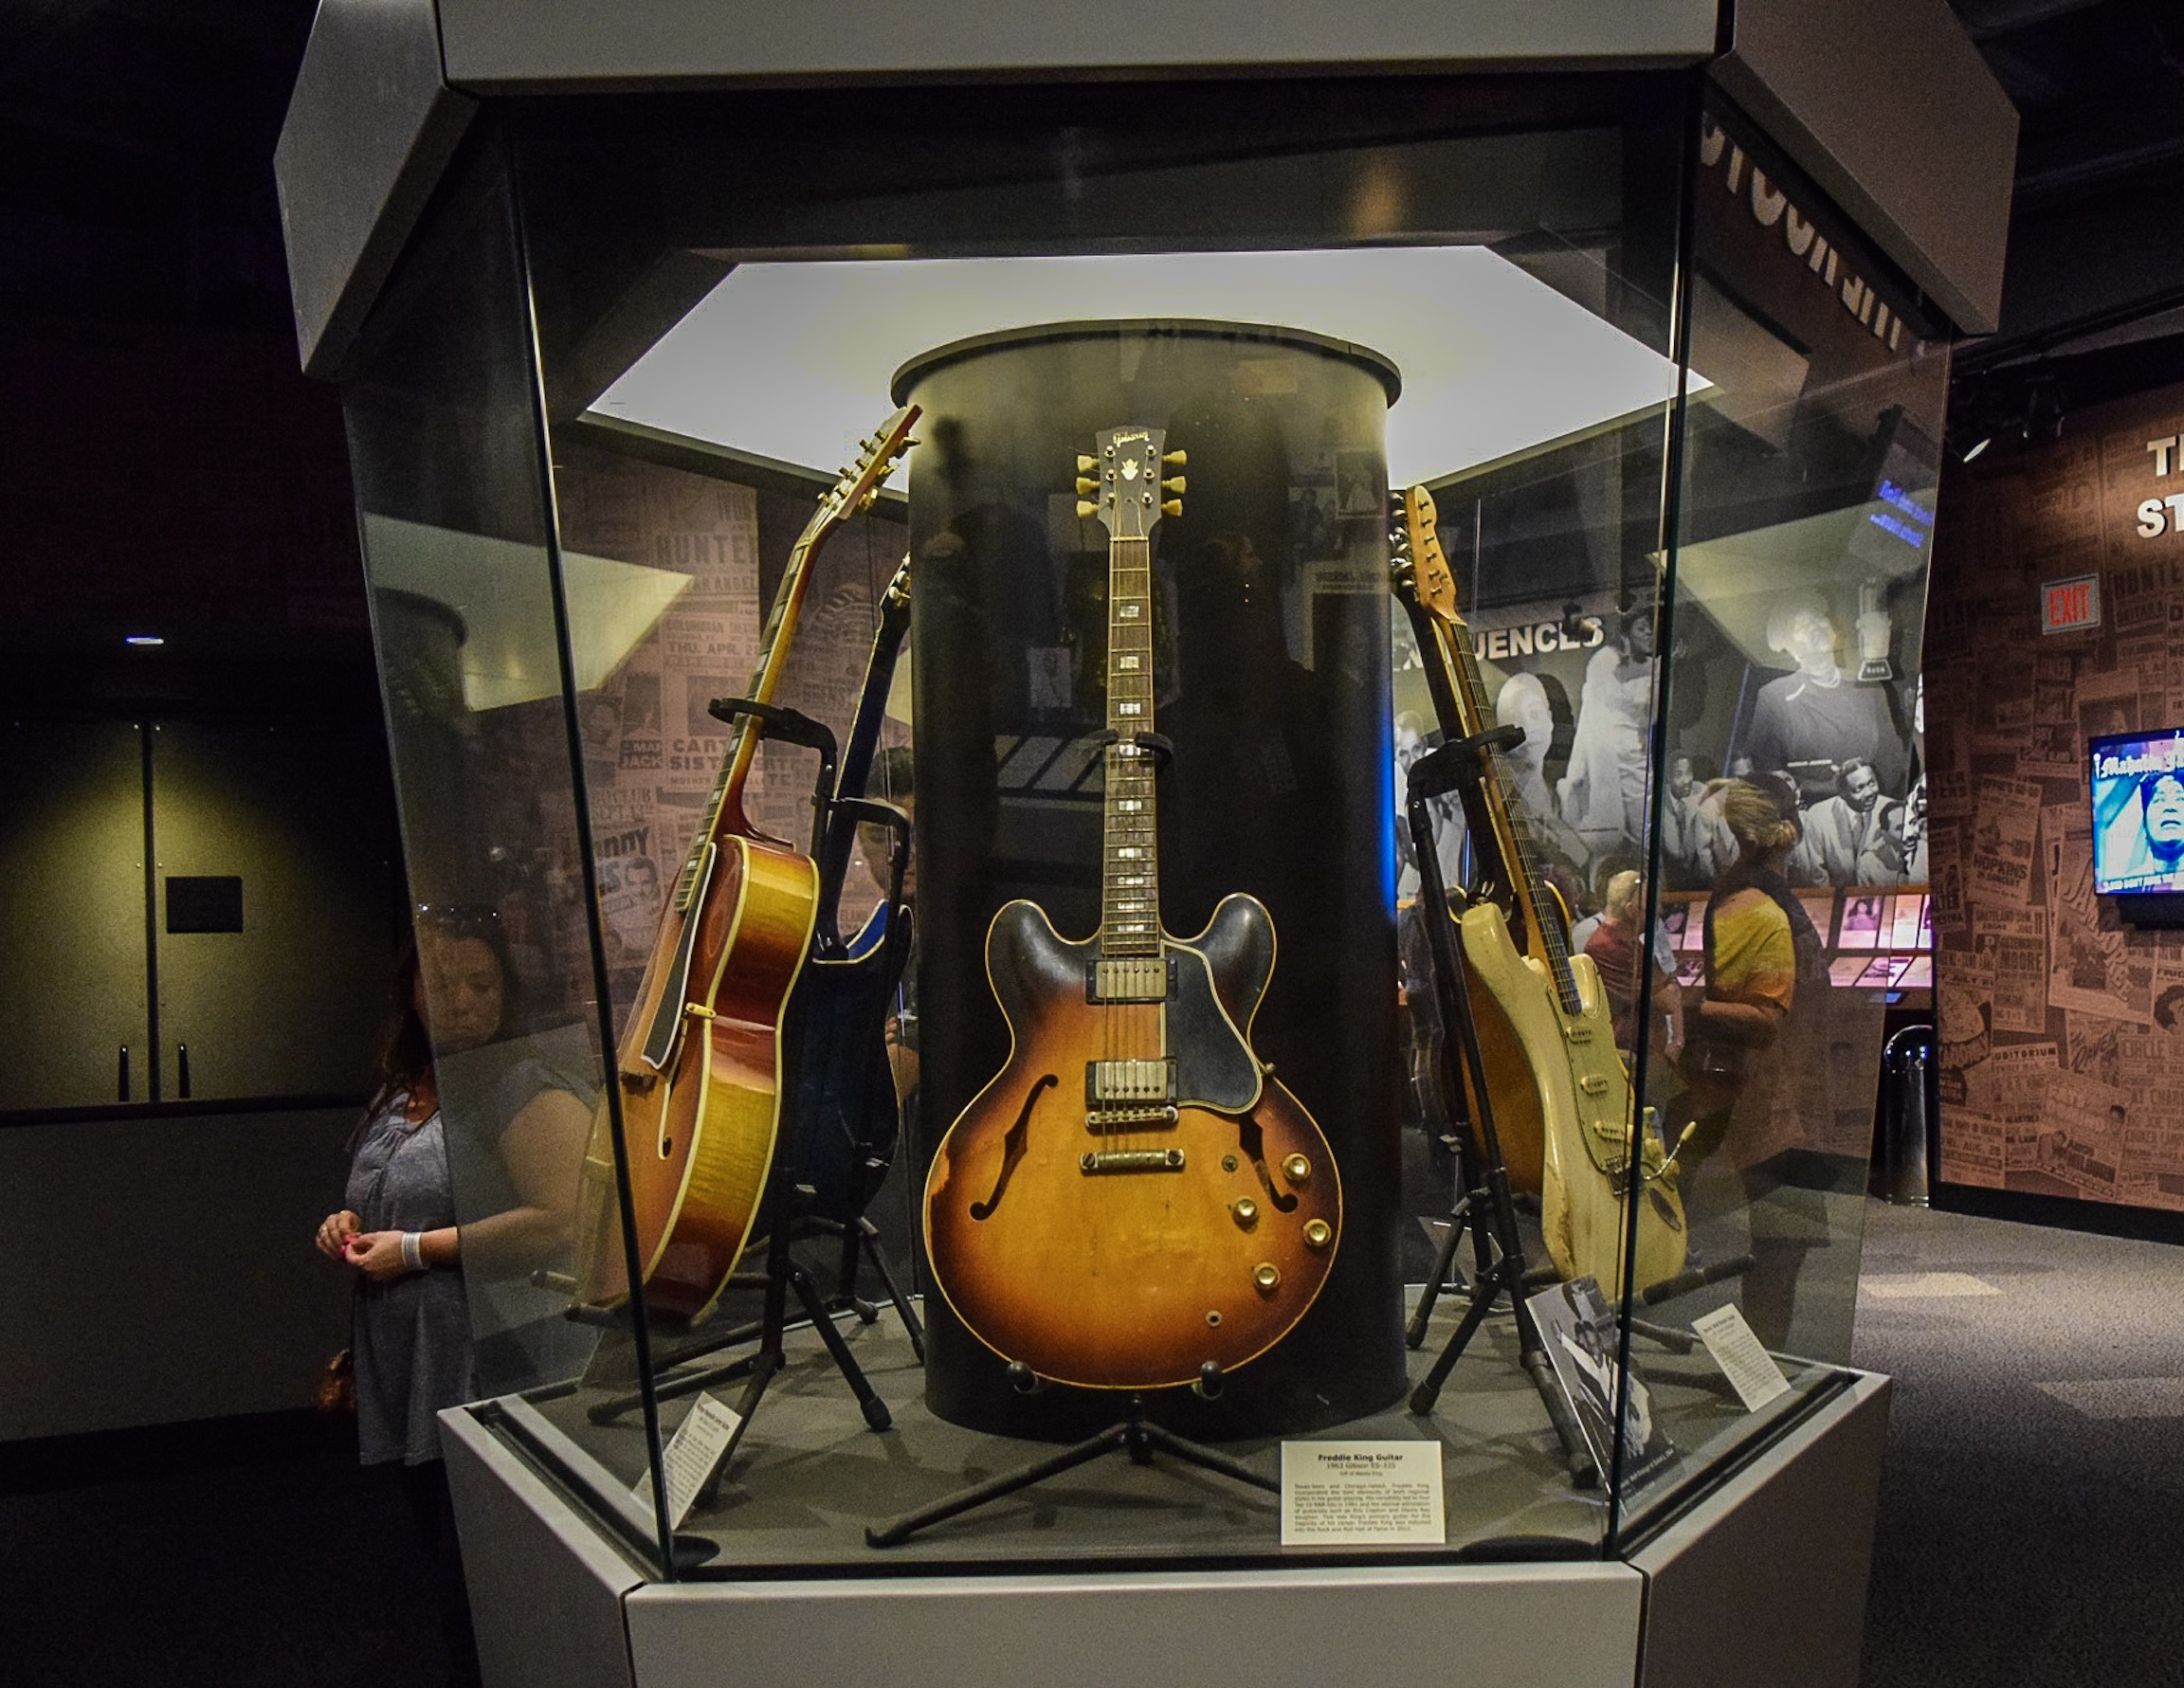 Iconic Foundations. Guitars played by legends of the blues including Muddy Waters, Howlin Wolf, John Lee Hooker, and more.